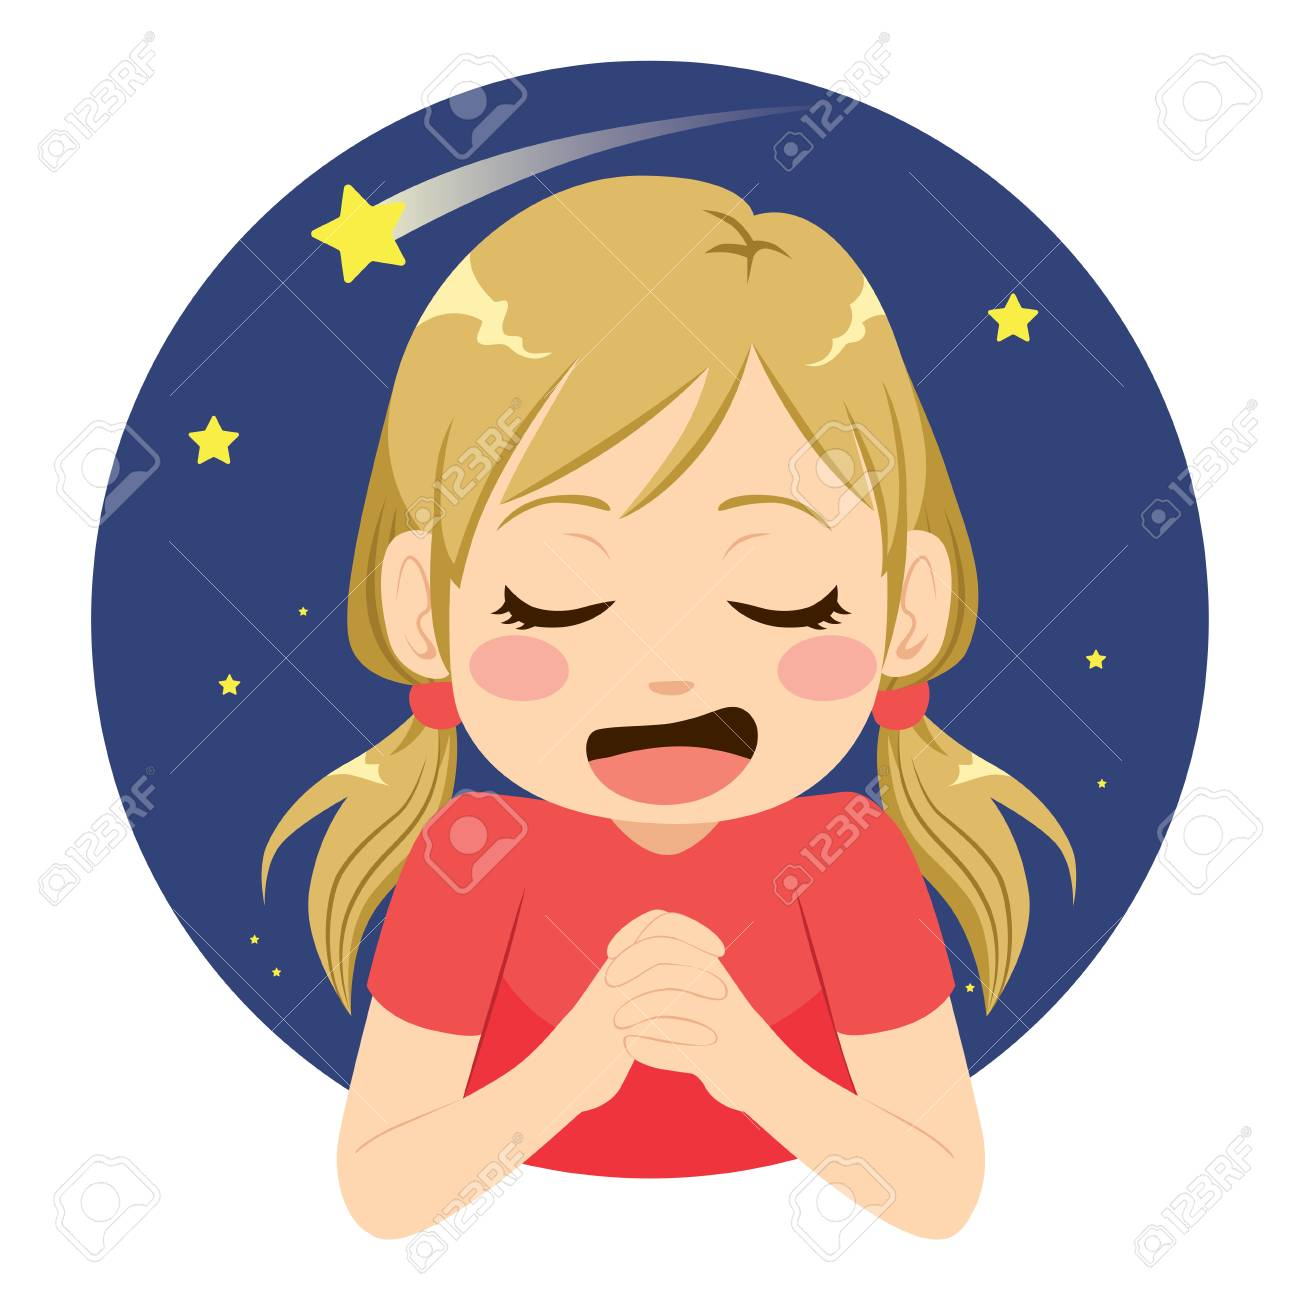 Beautiful little girl making wish praying to shooting star with happy face expression - 107433910